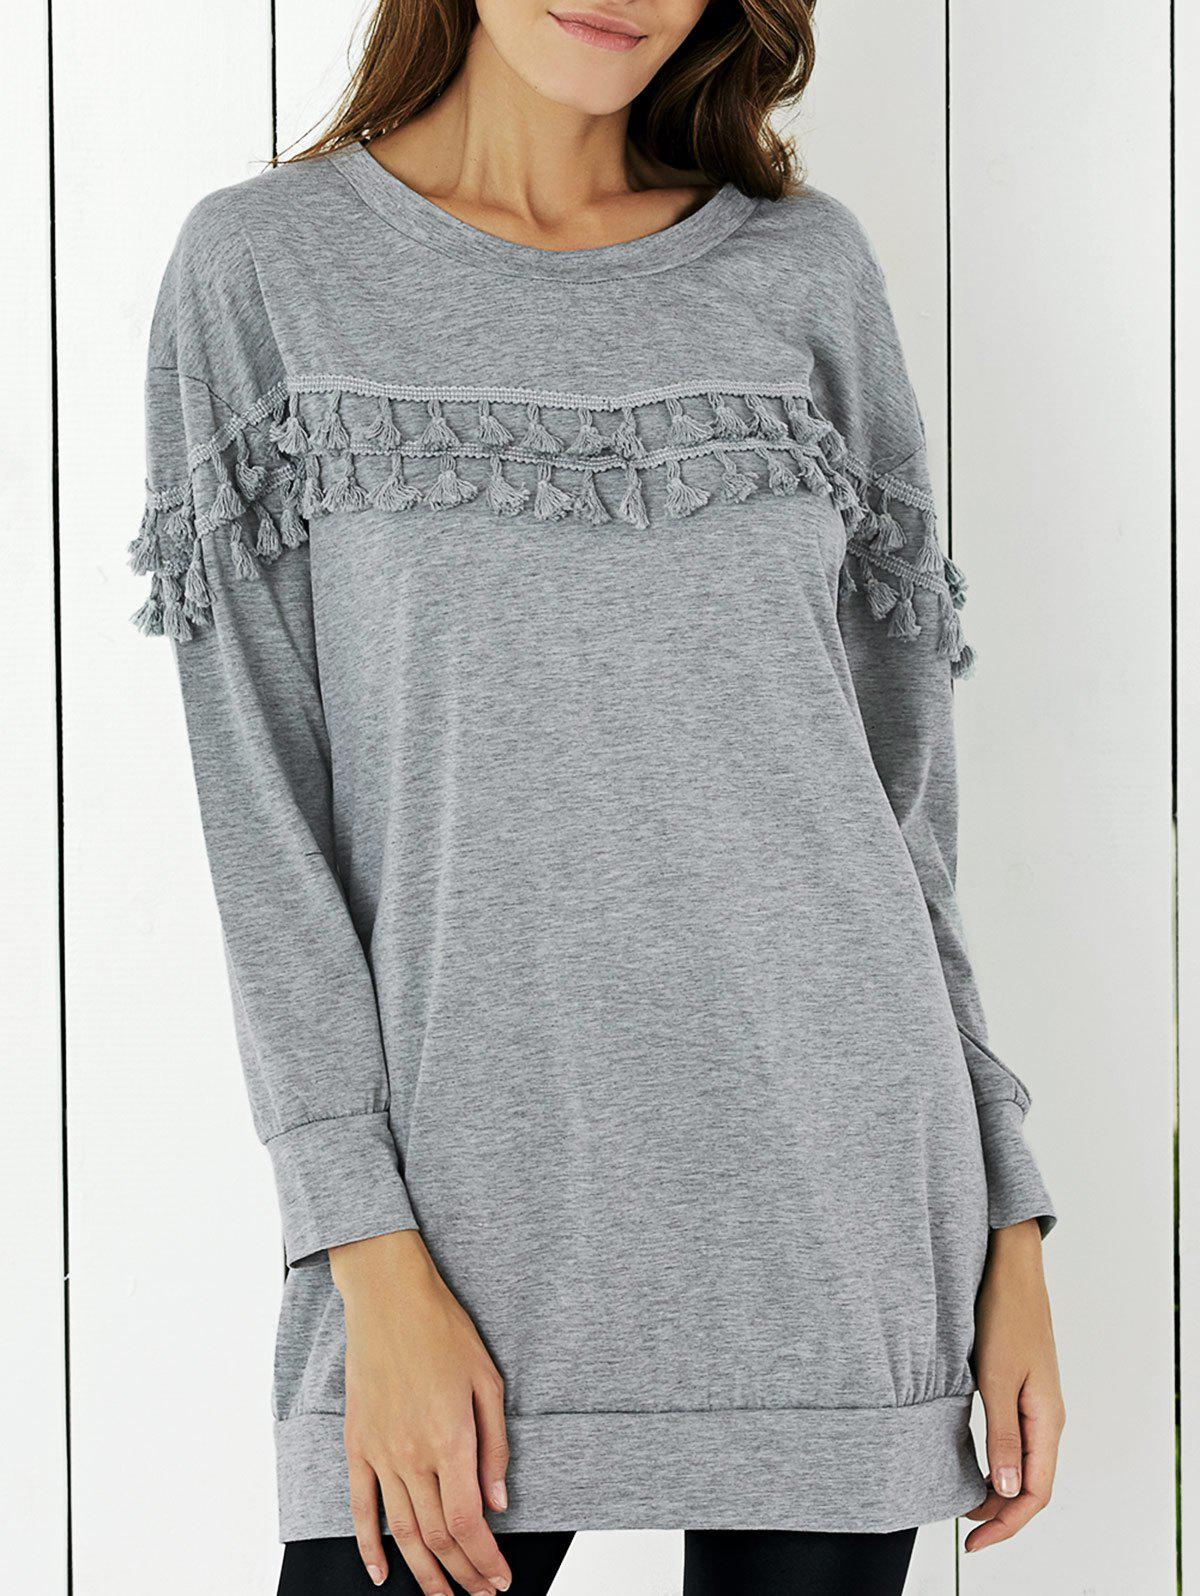 Tassel Embellished Solid Color Blouse - GRAY XL